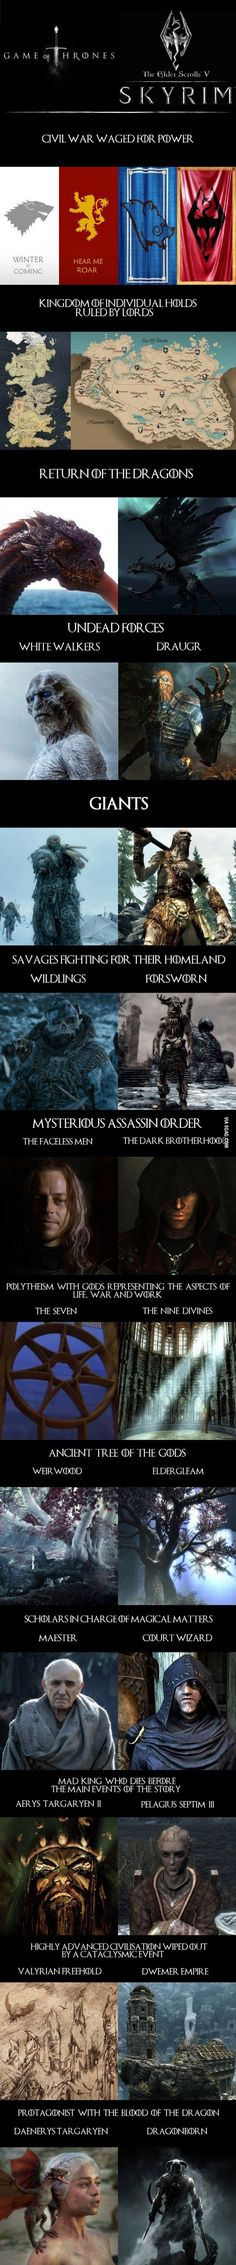 Just some resemblances between Game of Thrones and Skyrim that catch the eye.